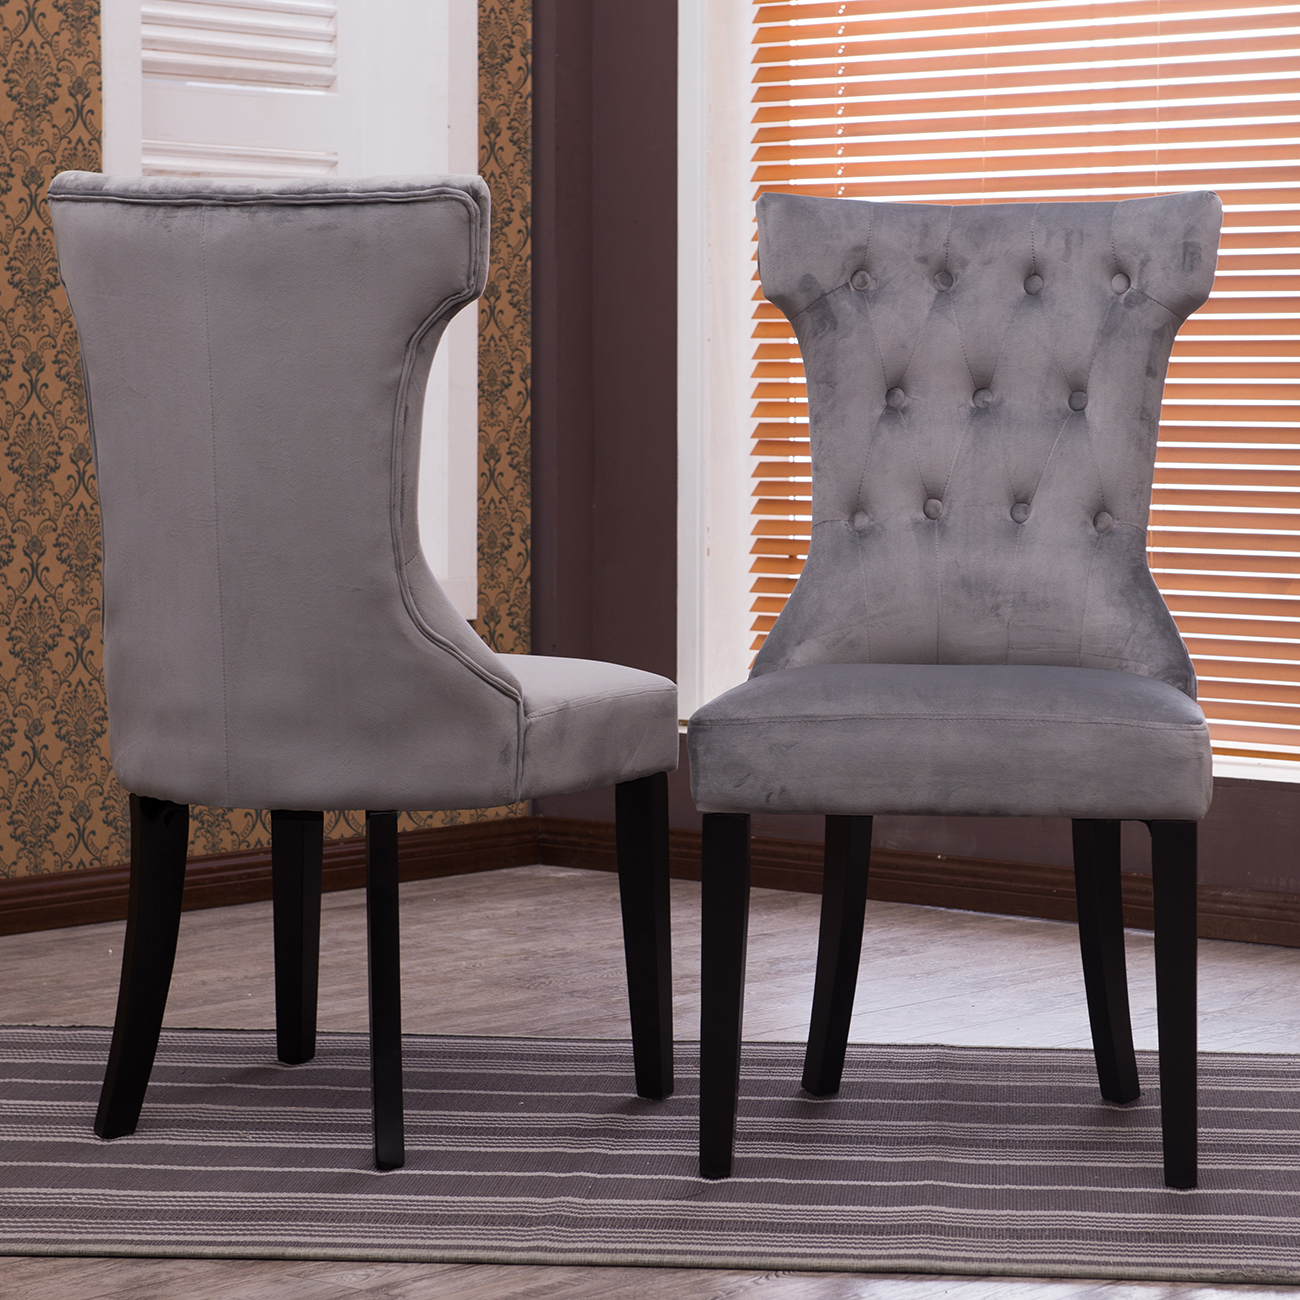 Set Of 2 Dining Chairs: Set Of 2 Accent Dining Chair Fabric Tufted Modern Living